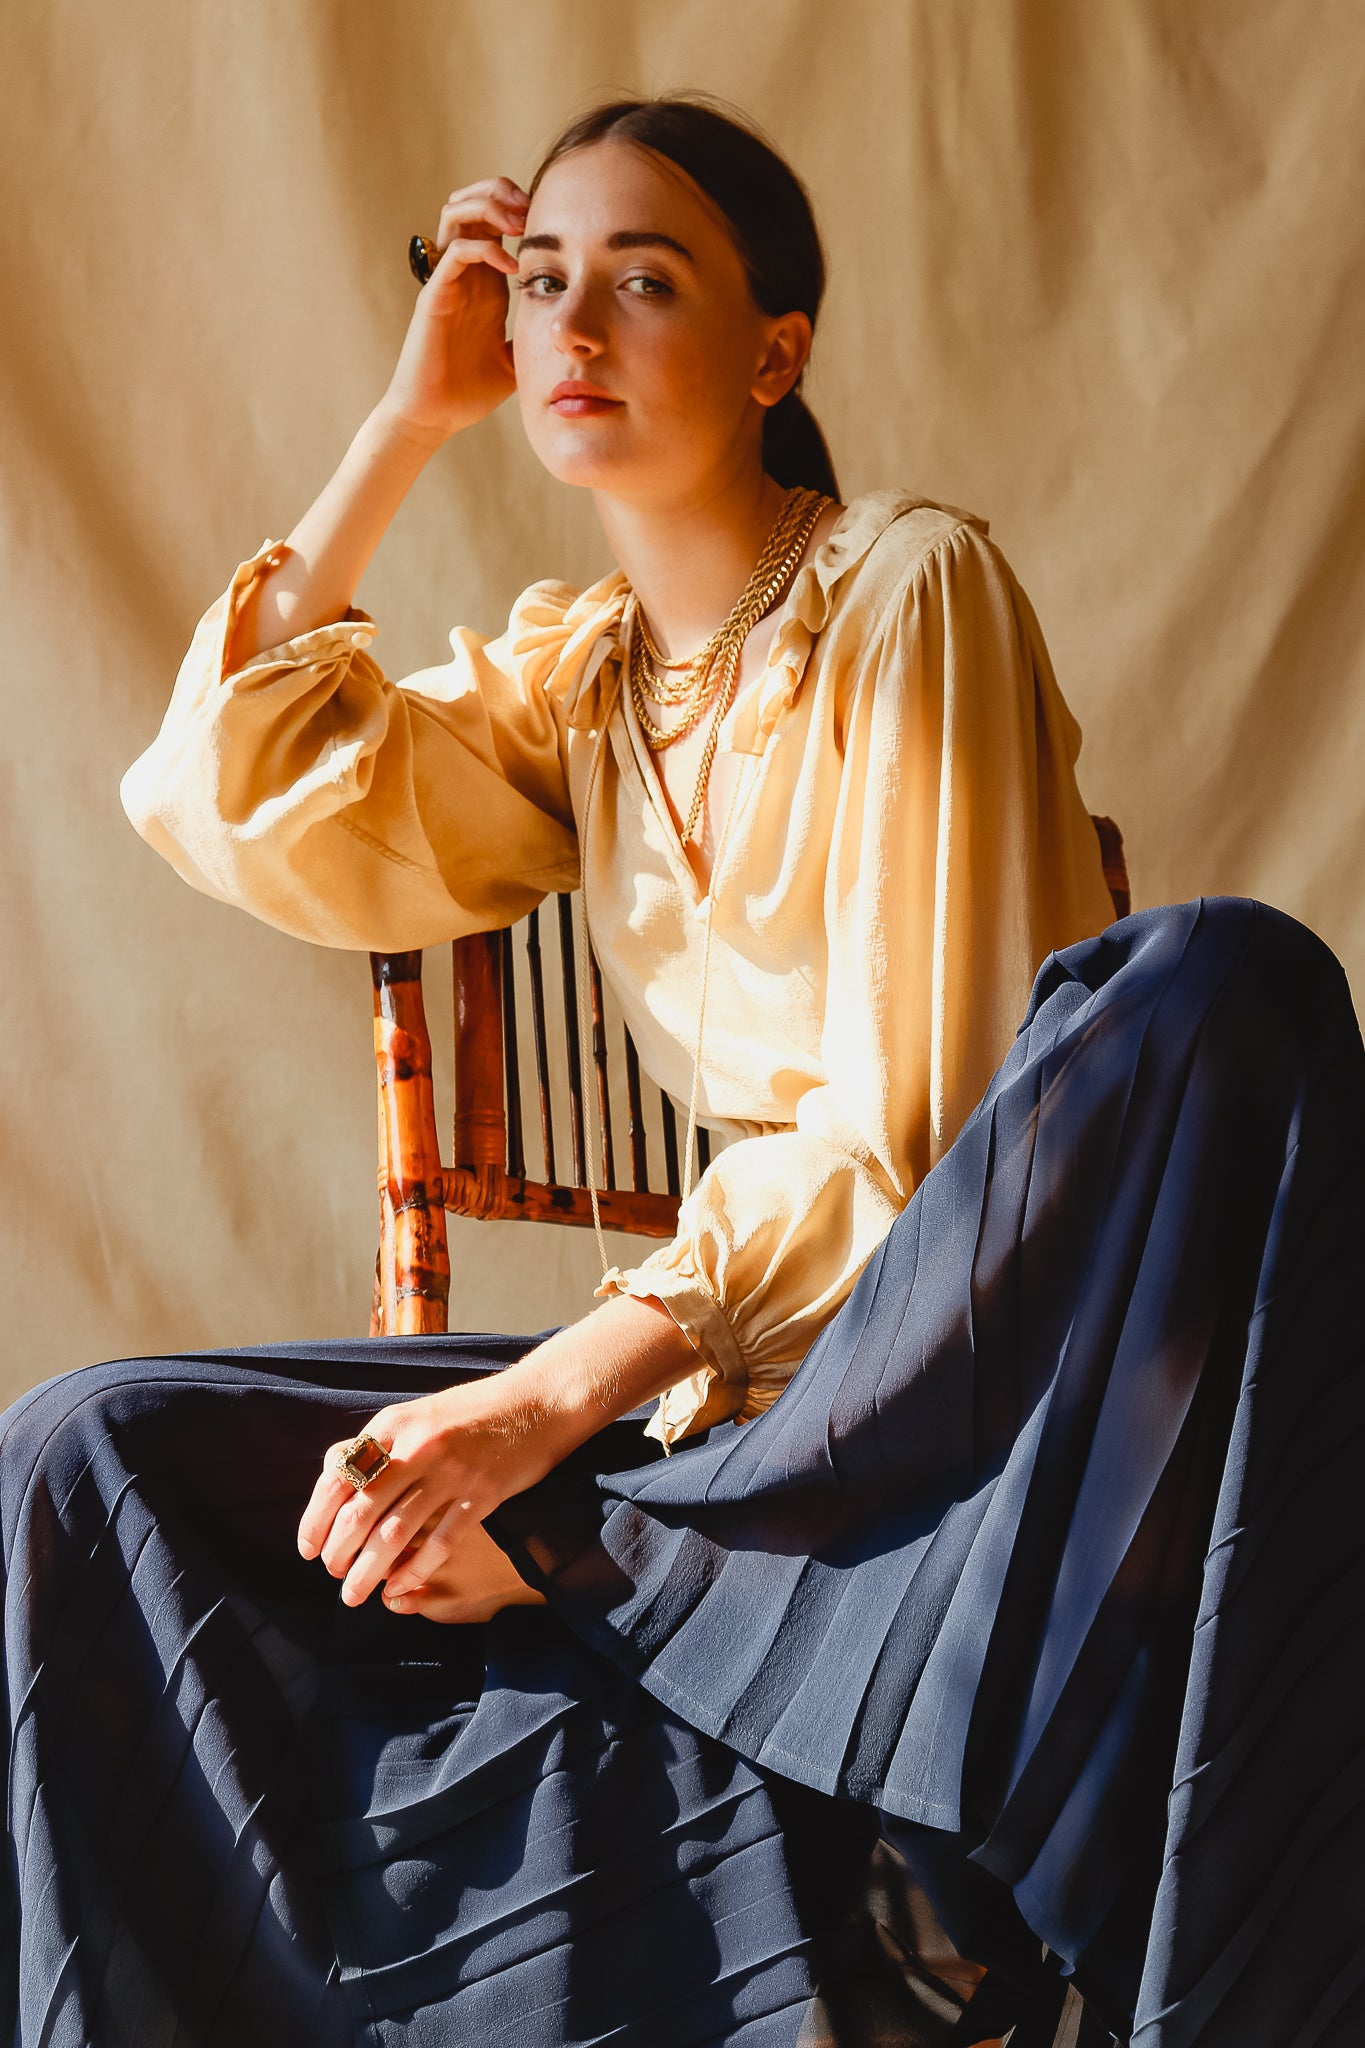 Recess Vintage Consignment LA Girl sitting in beige YSL Blouse & Mila Schon Sheer Palazzo Pants